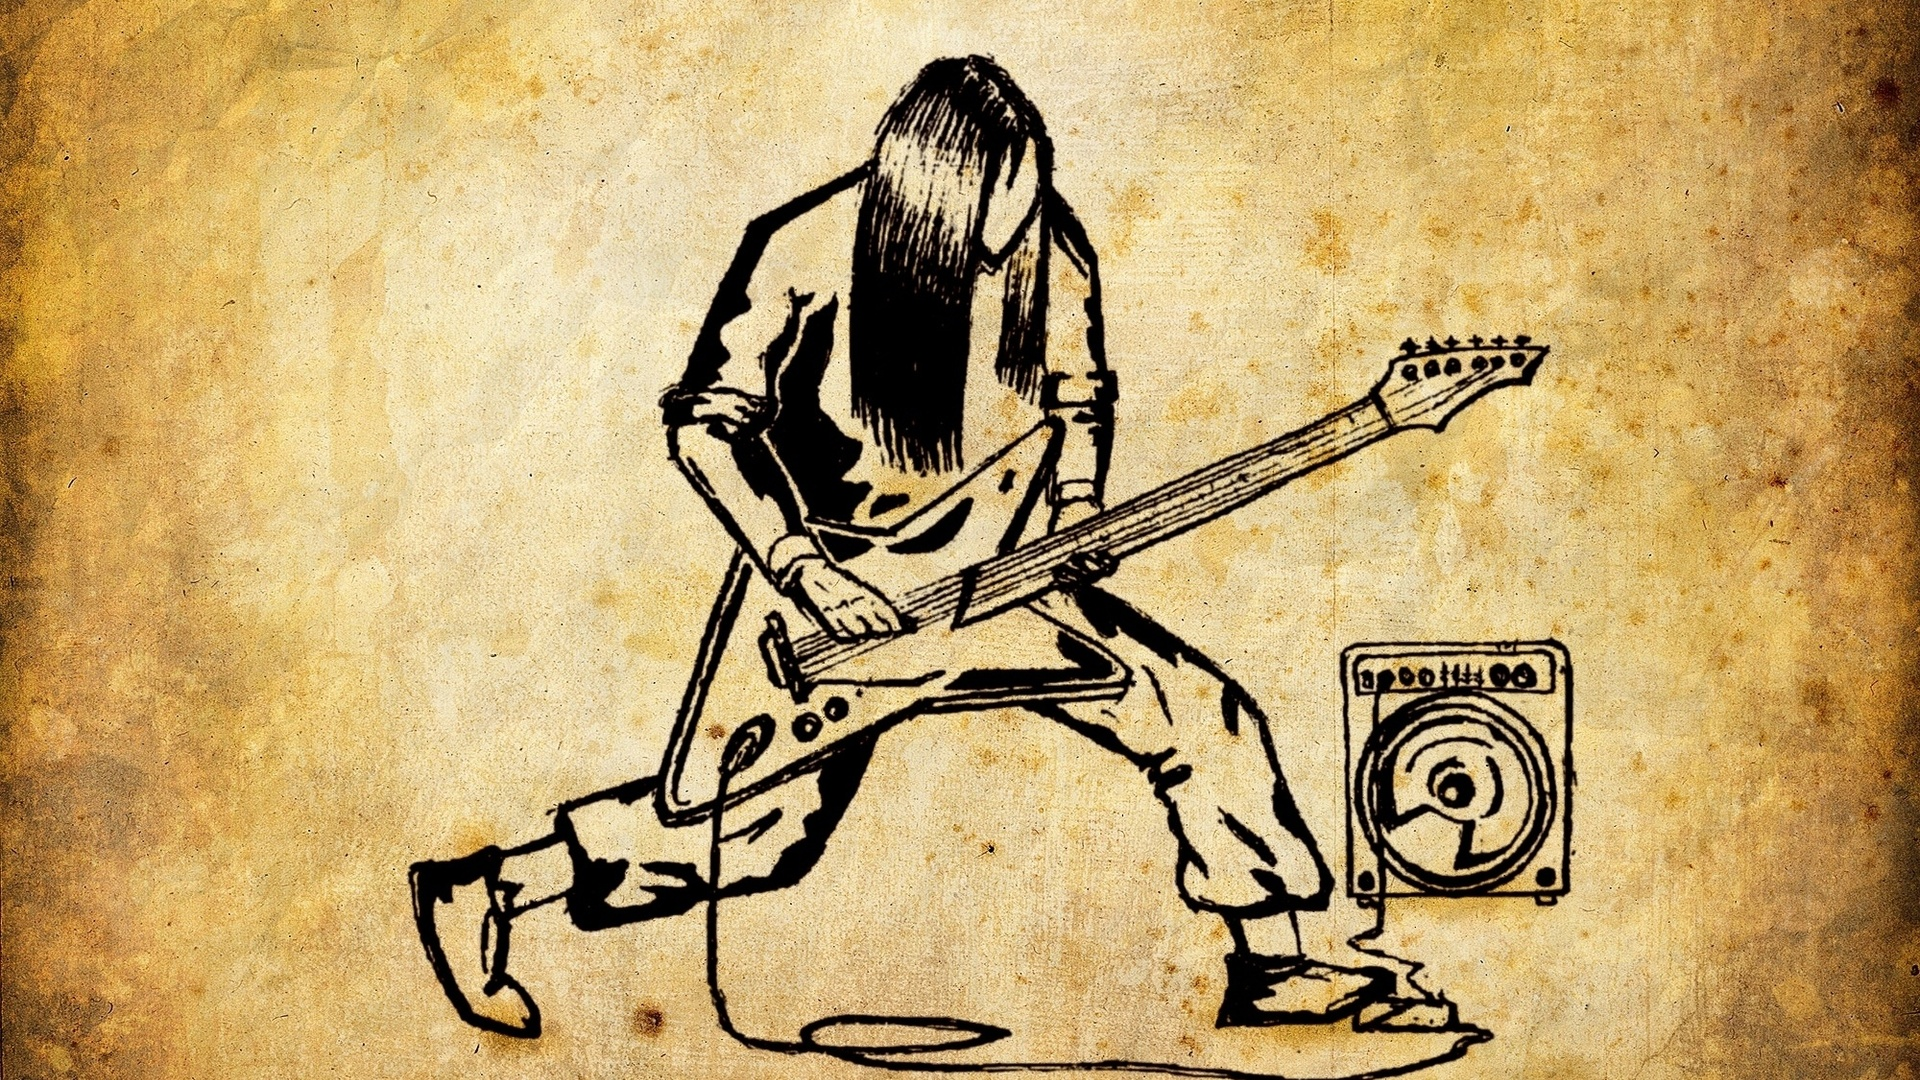 1920x1080-Drawings-Metal-Rock-Old-Paper-Guitar-Rock-Music-wallpaper-wp360766